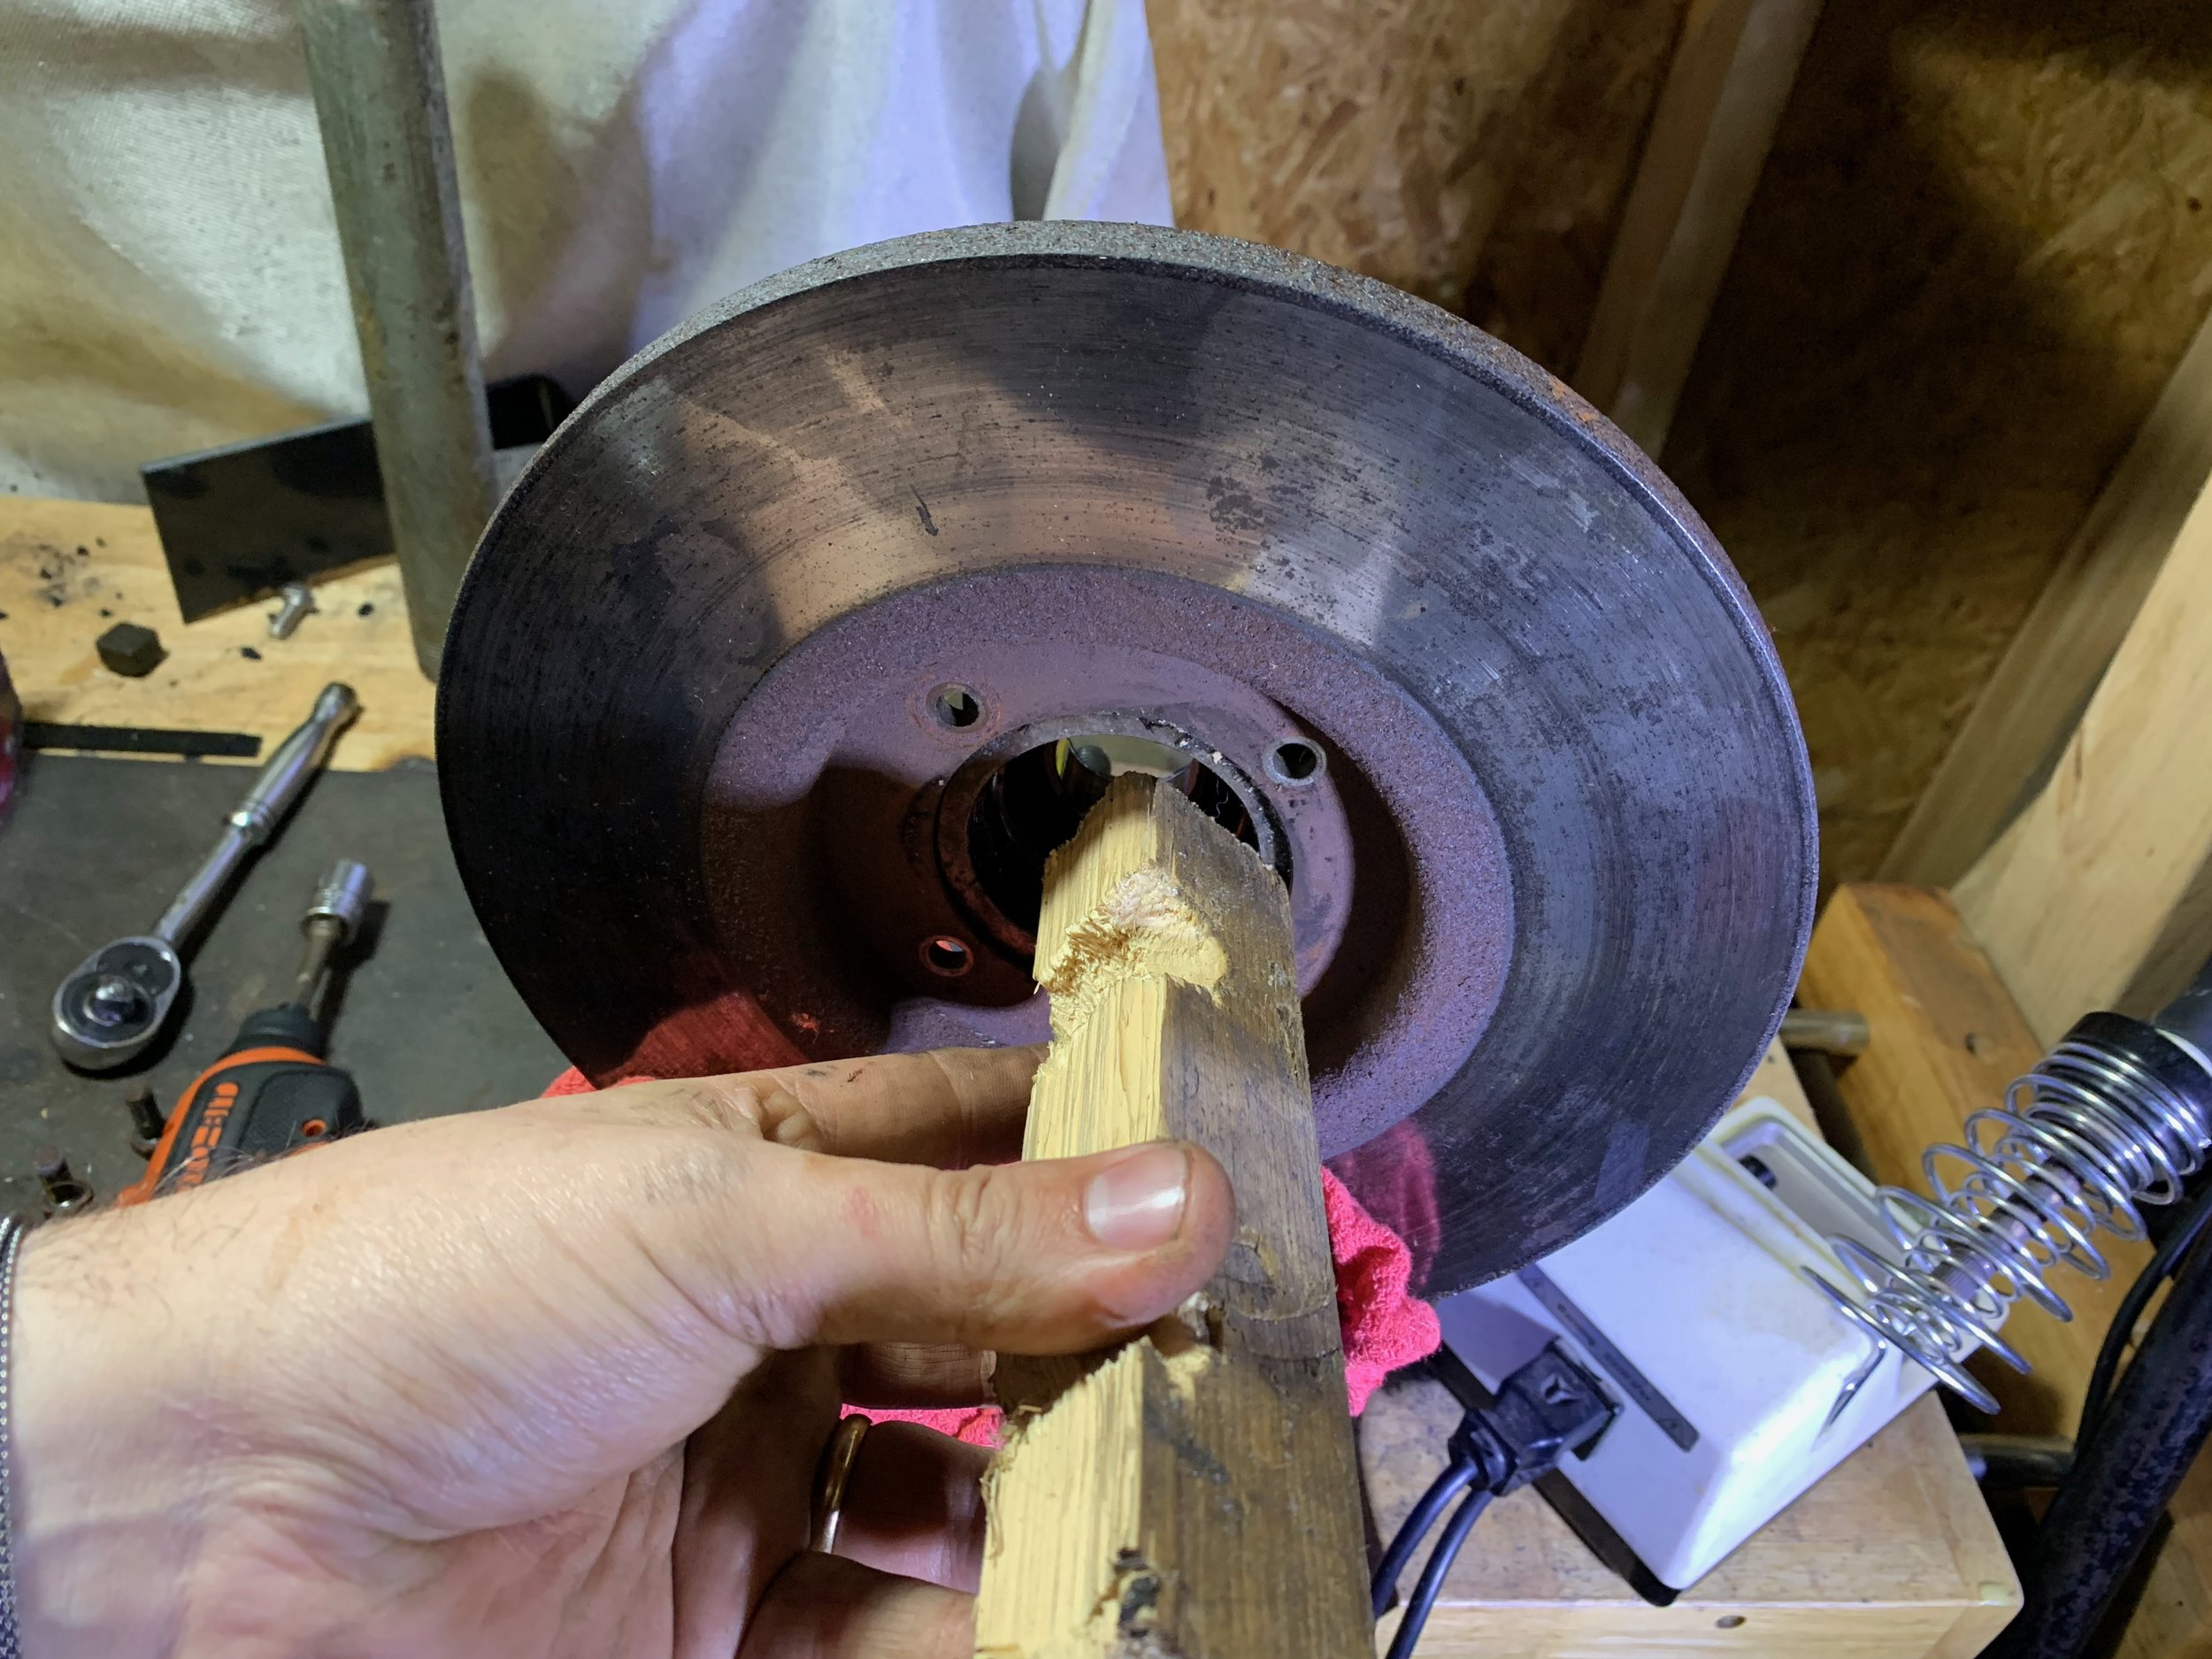 Placing a piece of wood against the bearing allowed me to tap out the hub with a hammer without damaging anything.